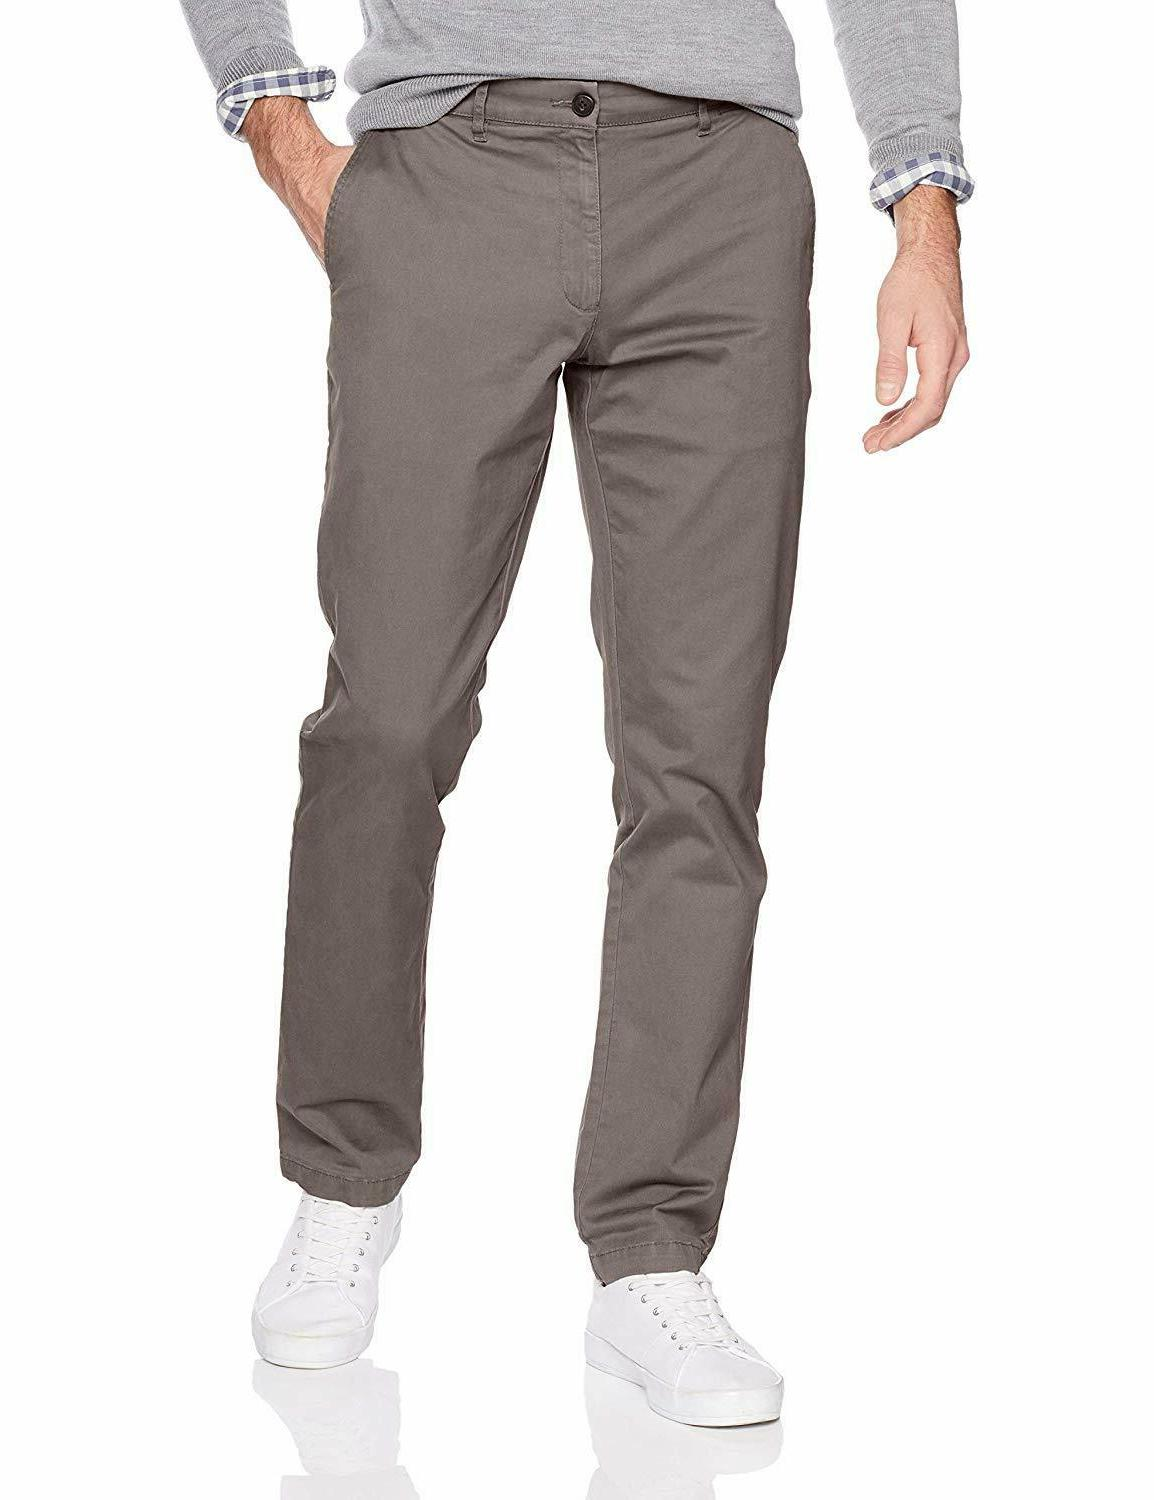 mens slim fit chino pants washed comfort